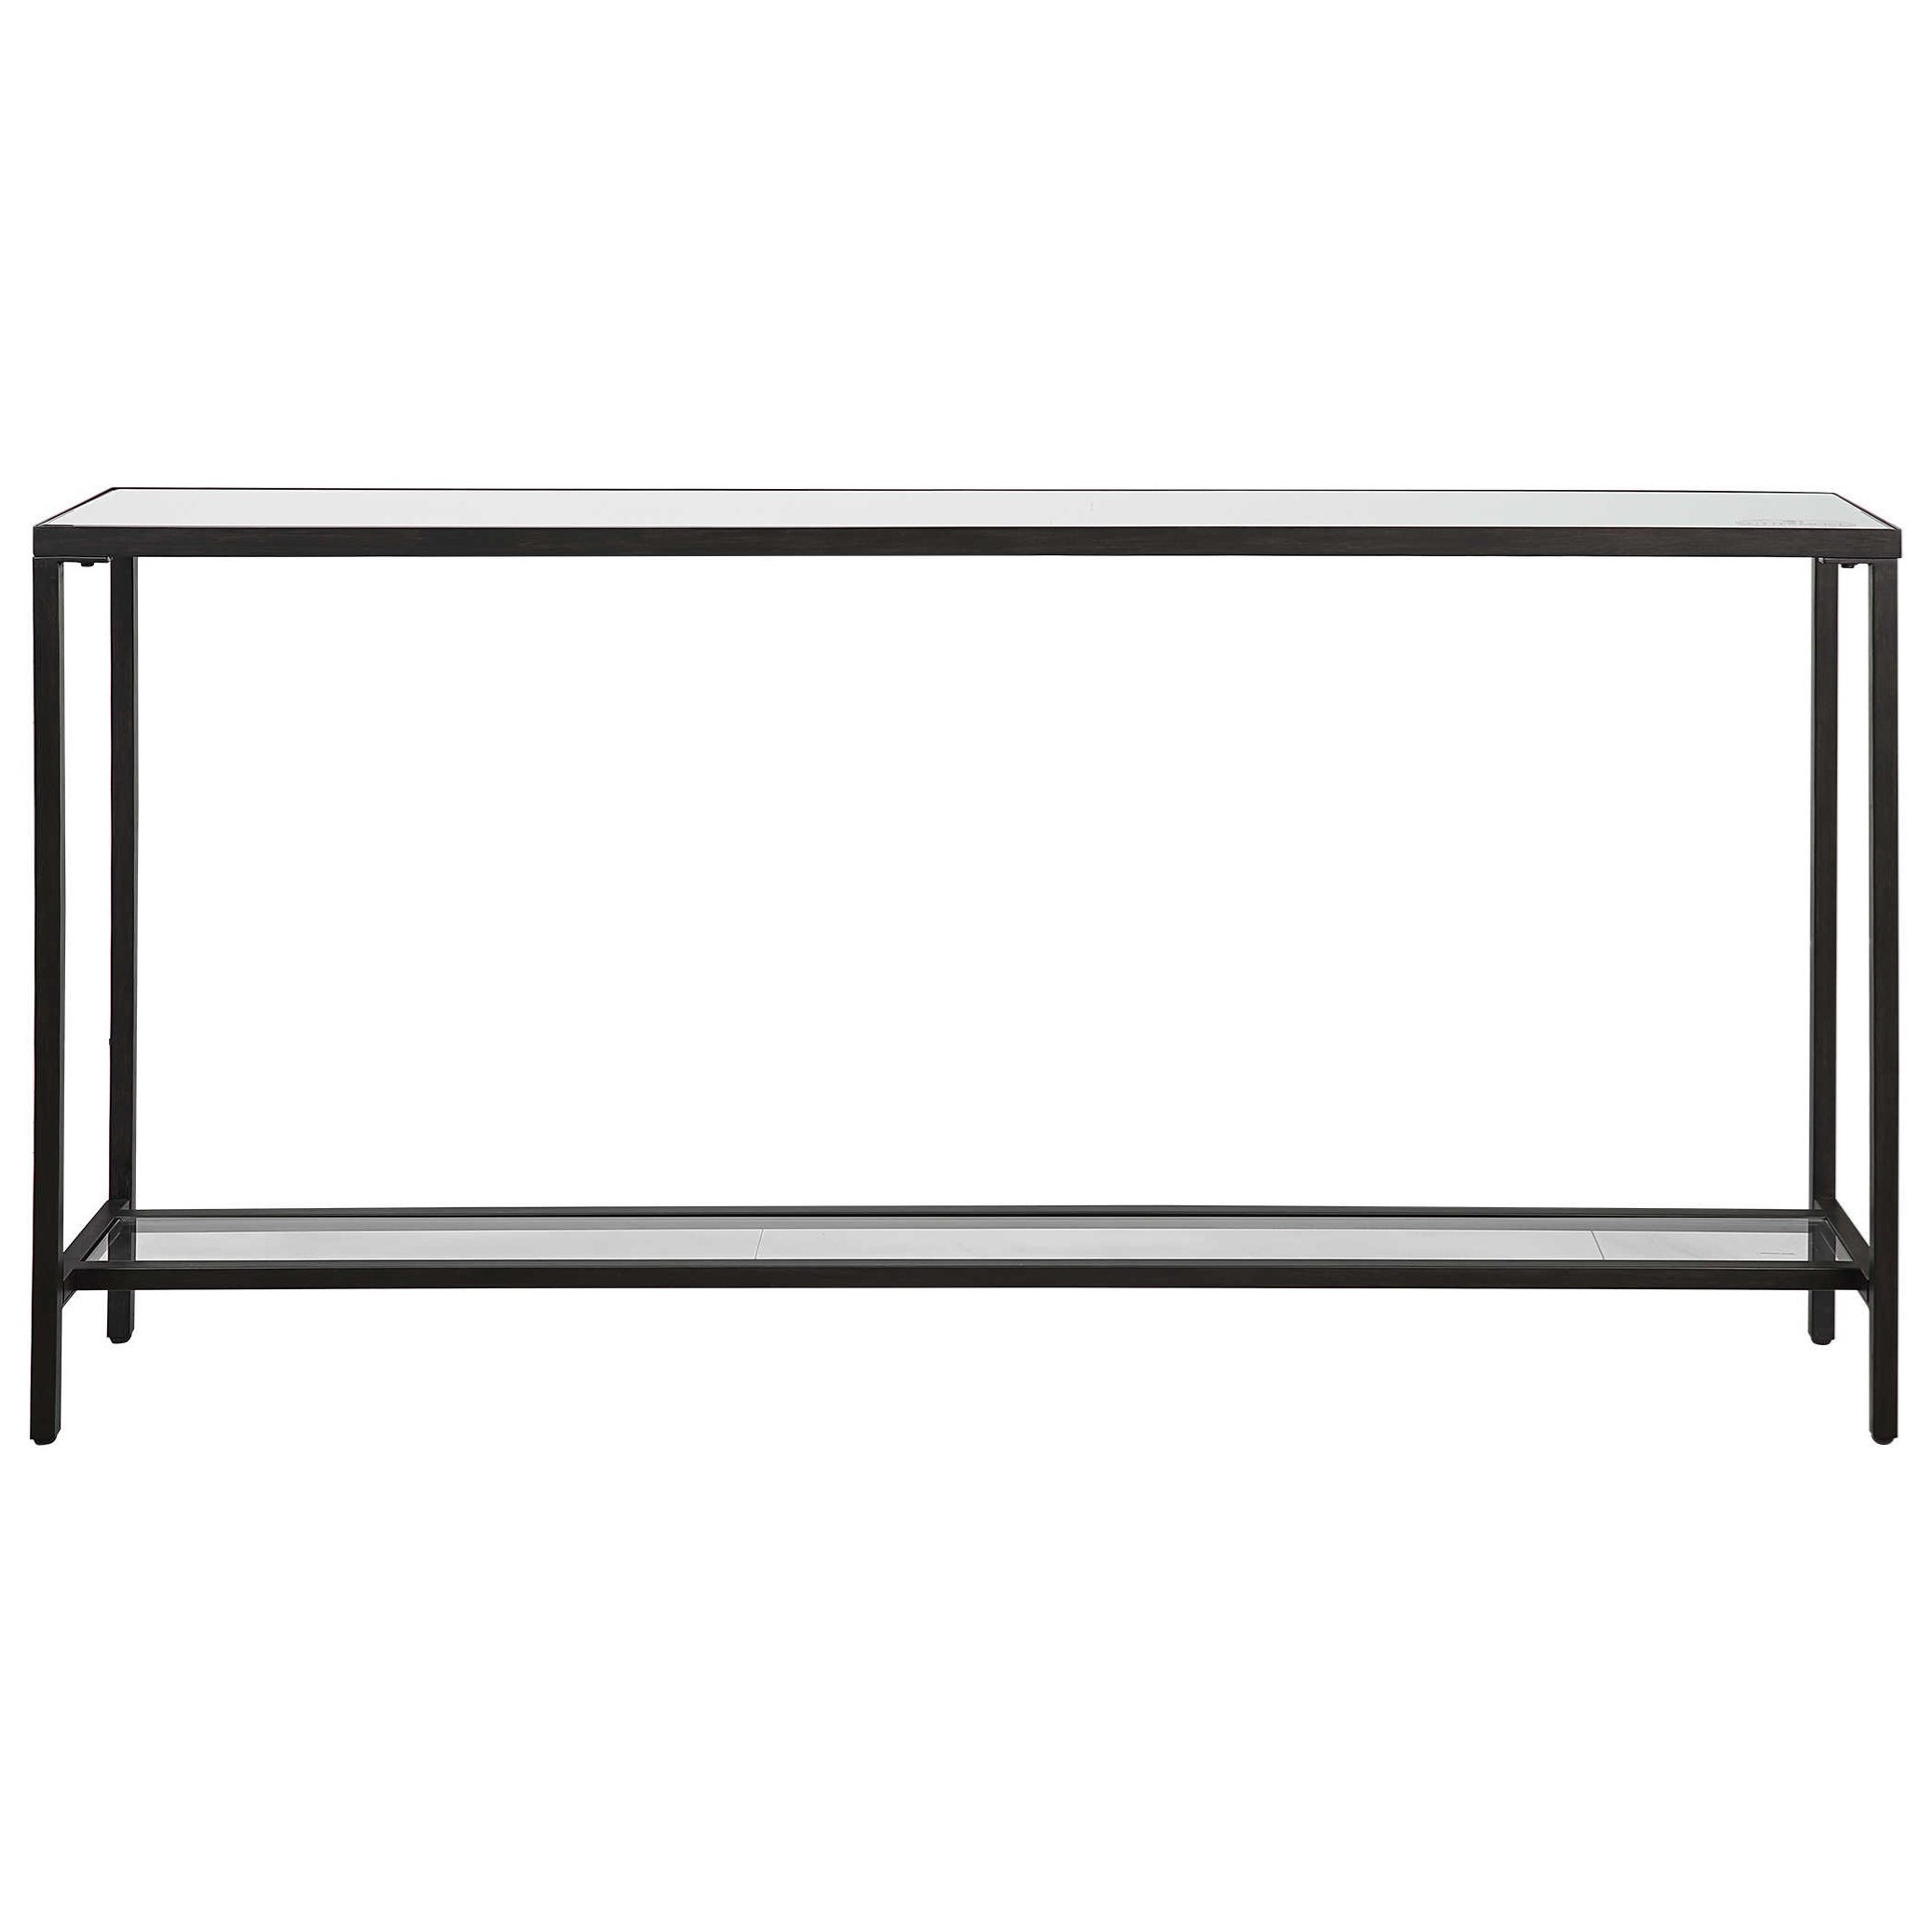 Accent Furniture - Occasional Tables Hayley Black Console Table by Uttermost at Suburban Furniture